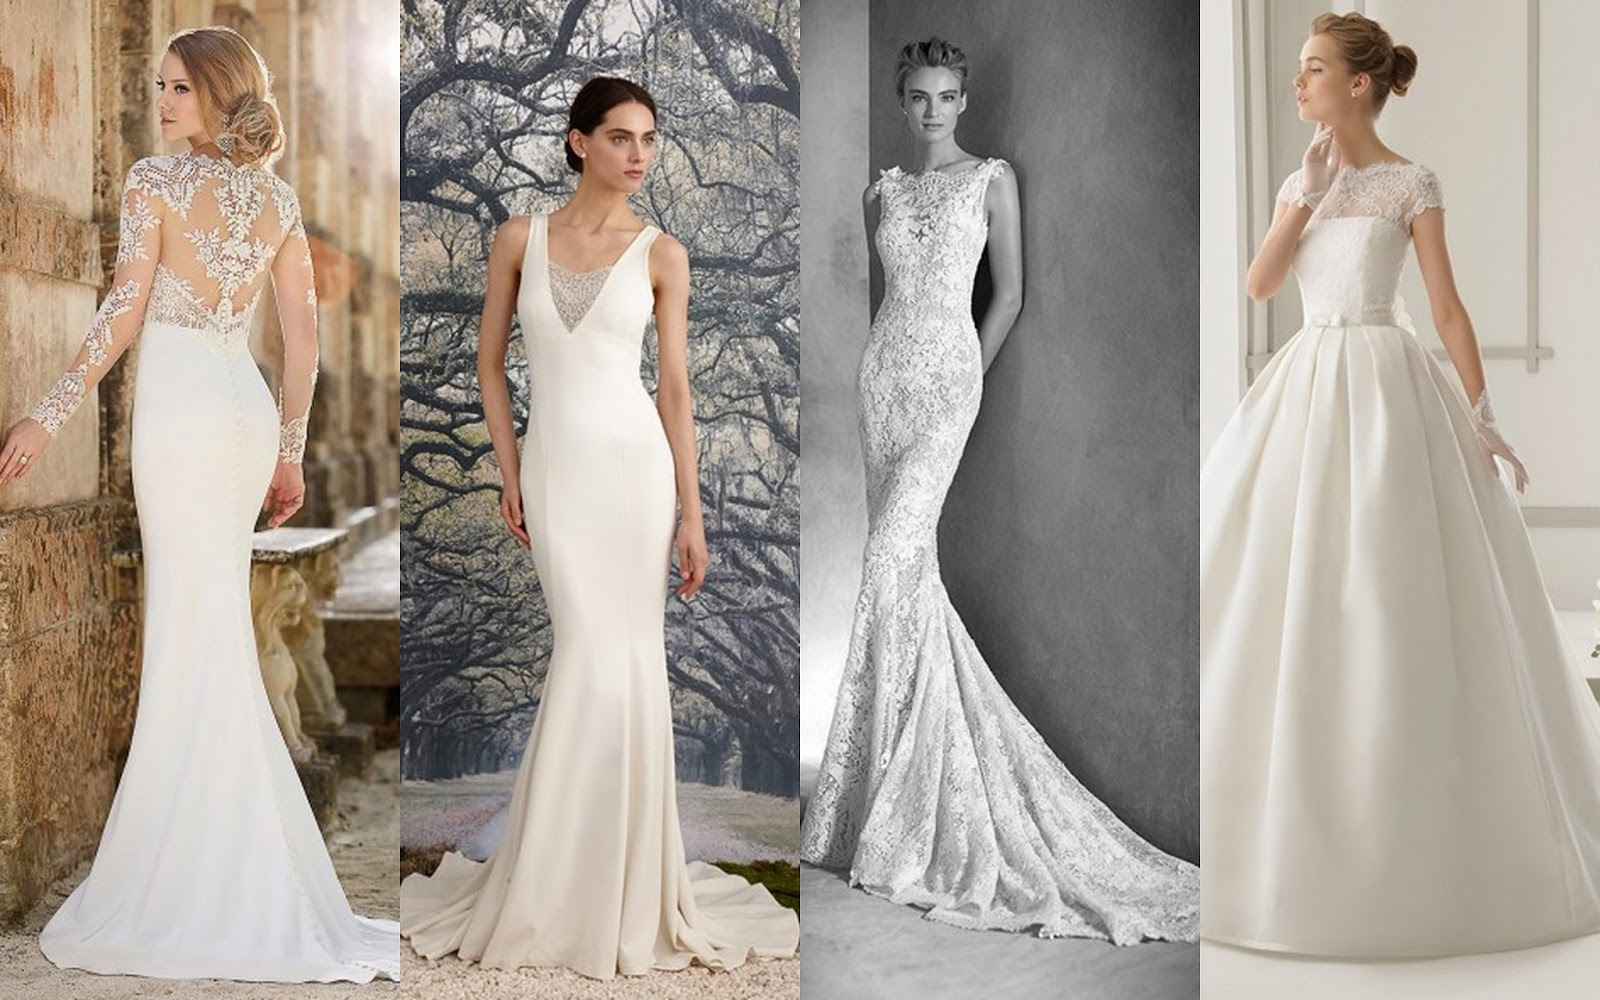 wedding dresses from ladybridal glitter wedding dress I love beautiful simple and gorgeous wedding dresses To me wearing a simple body fitted glitter full wedding dress